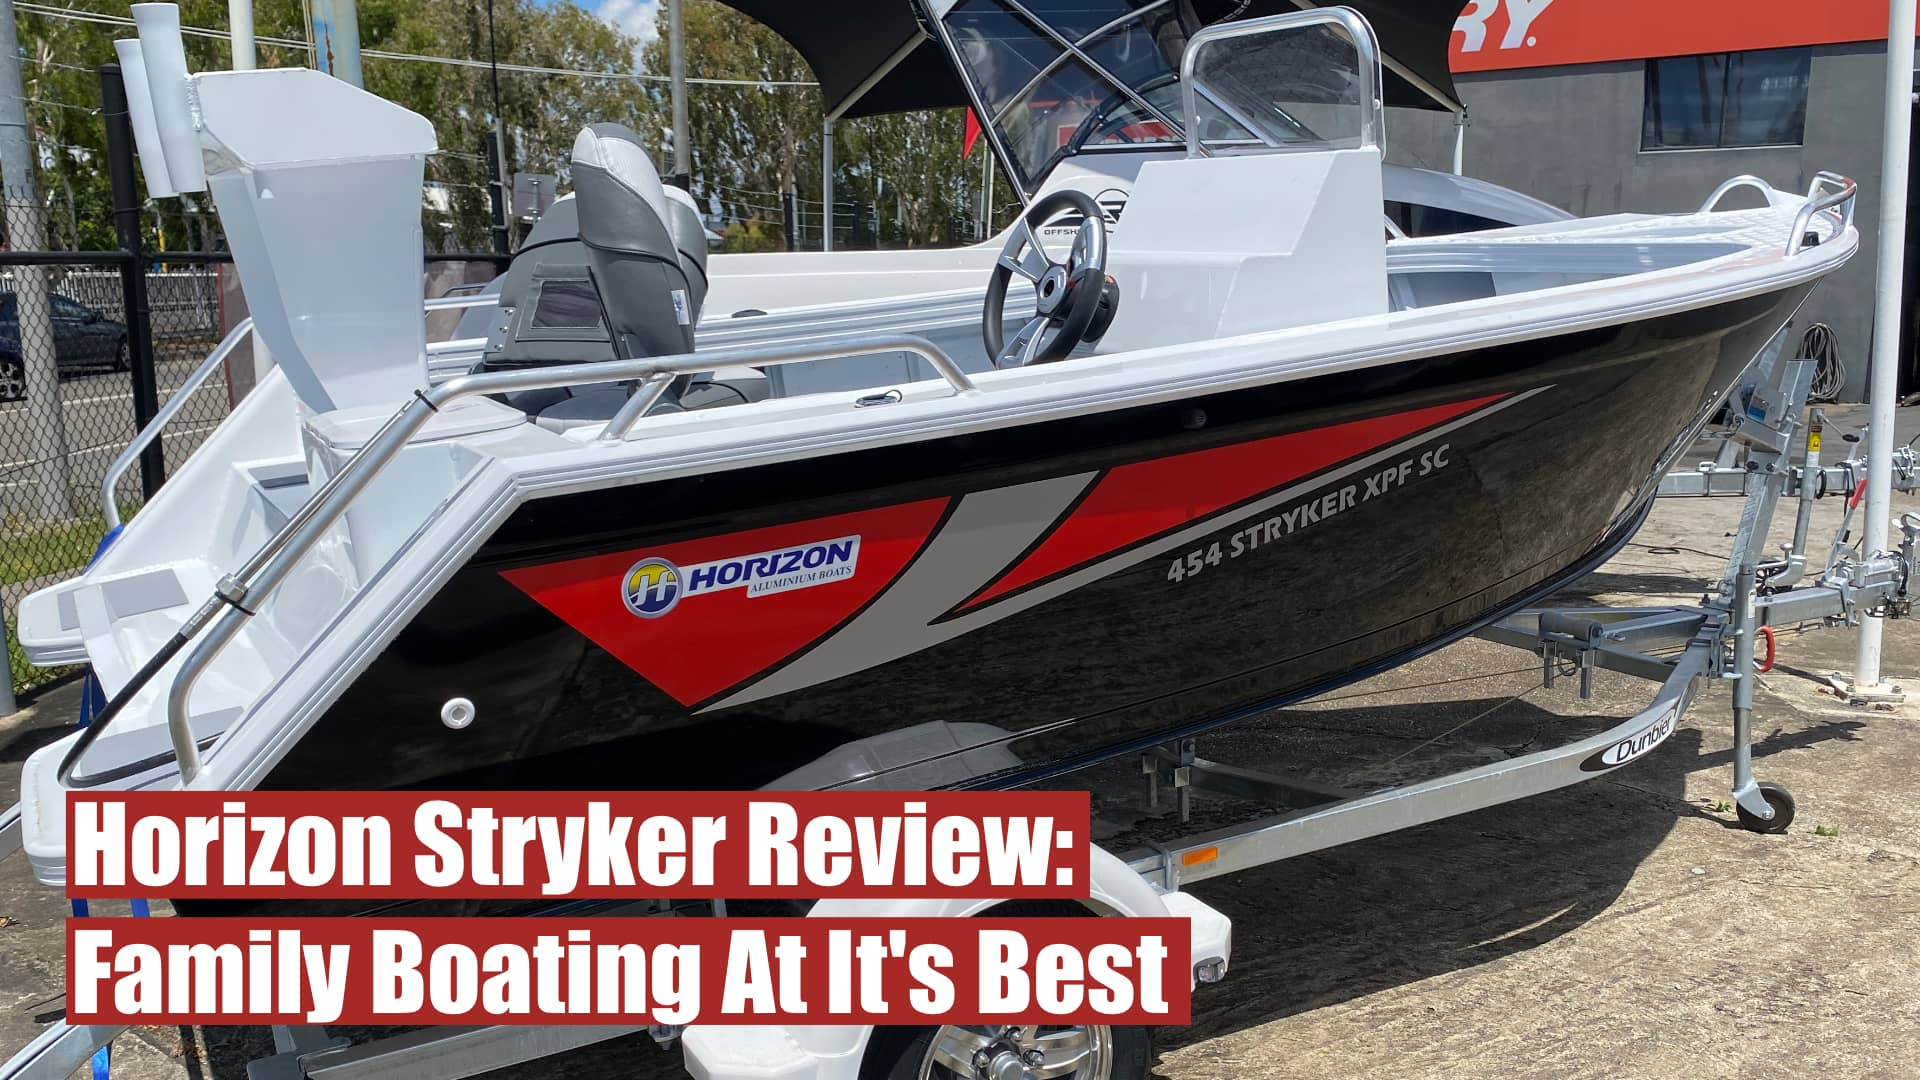 Horizon Stryker Review: Family Boating At It's Best